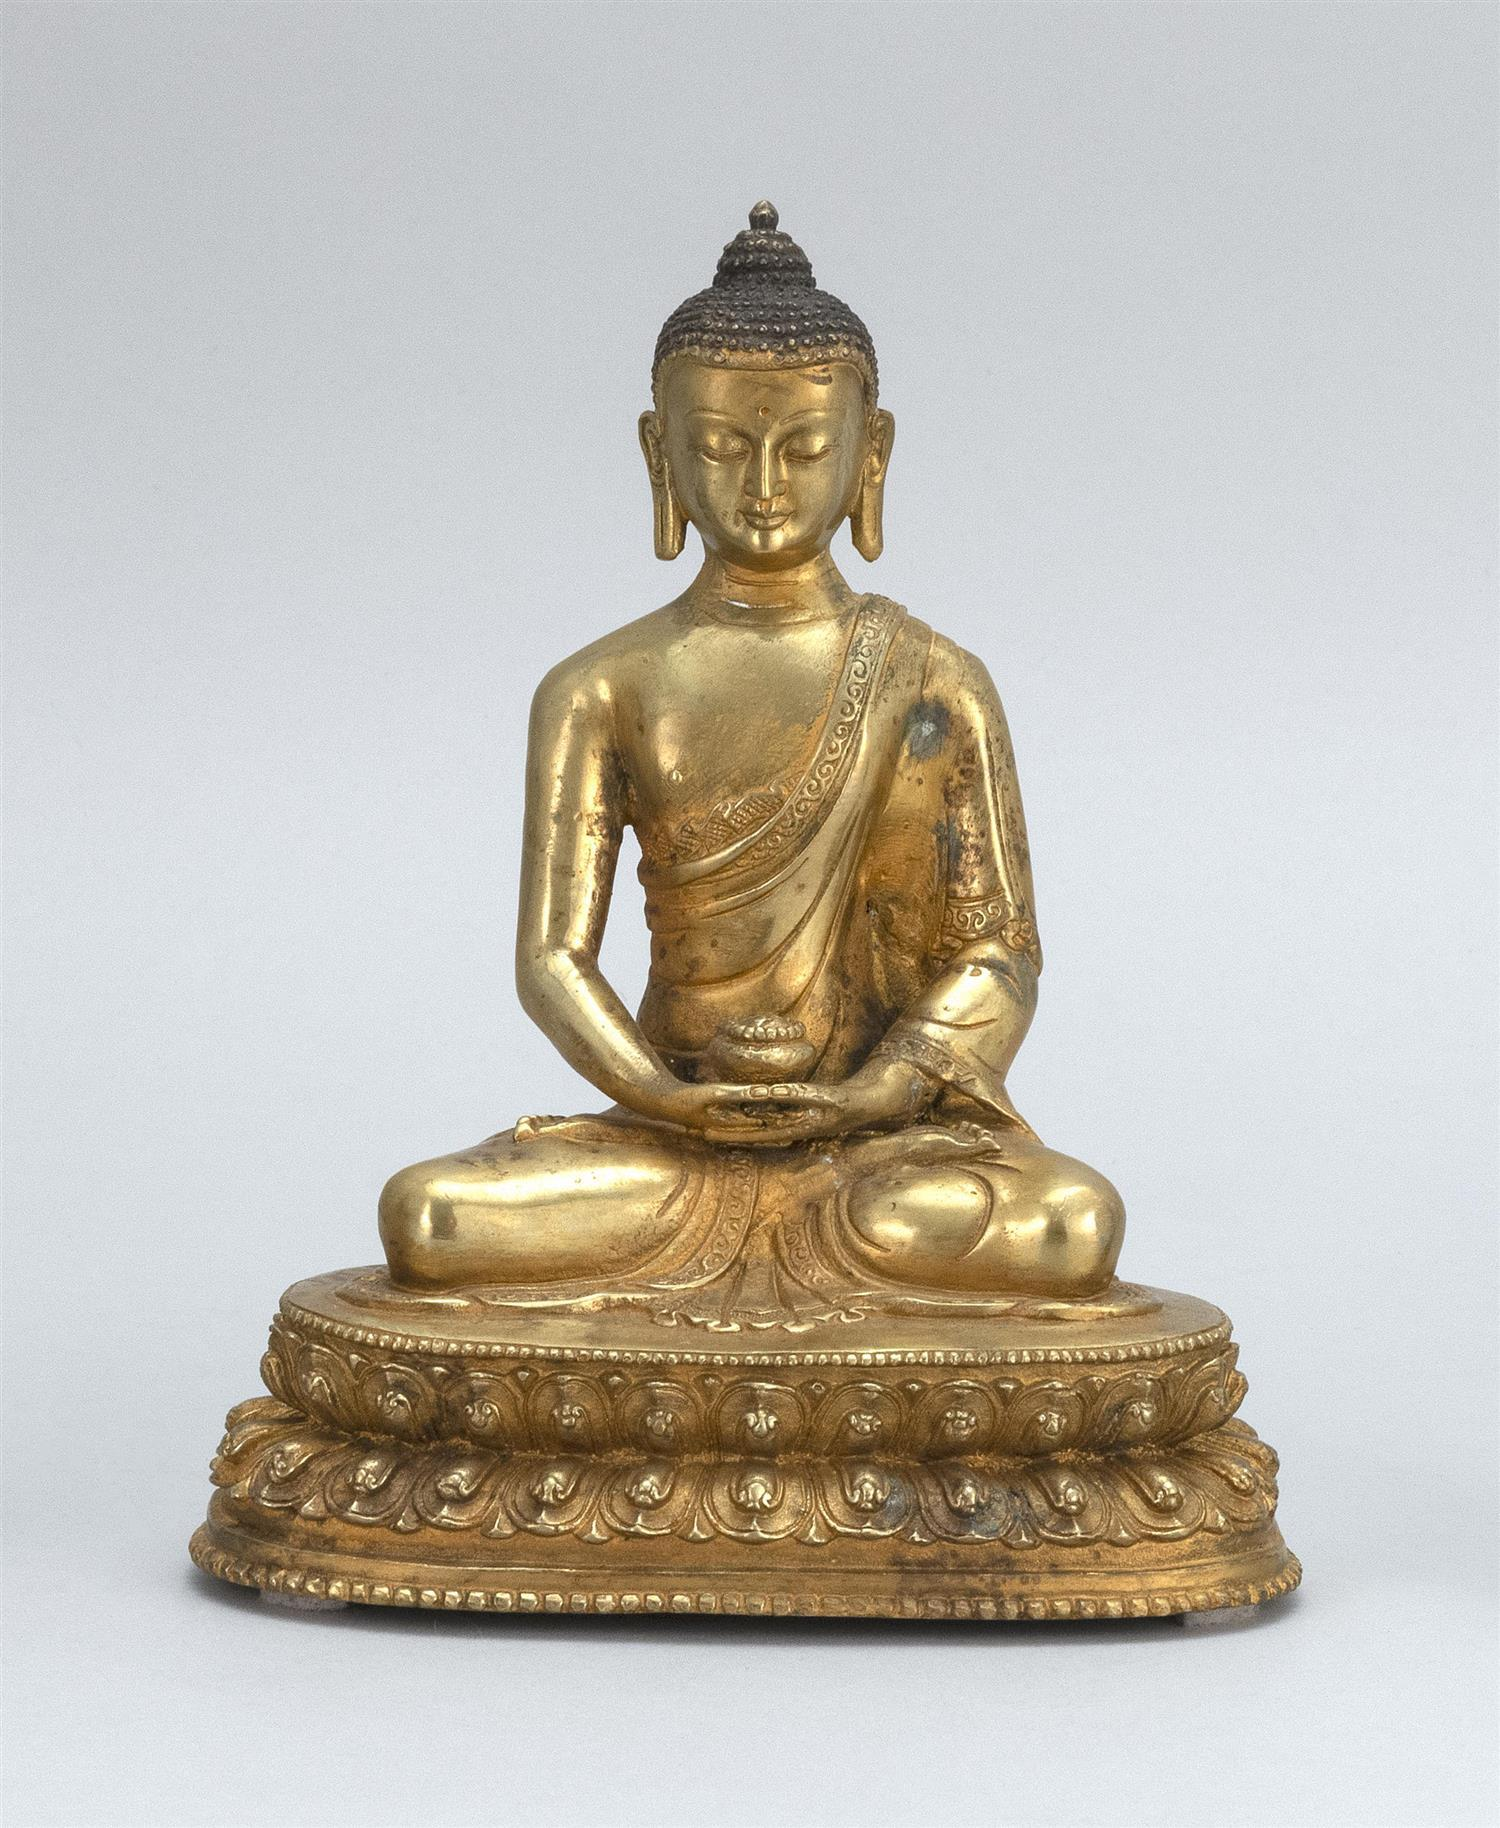 """SINO-TIBETAN GILT-BRONZE FIGURE OF BUDDHA Seated in lotus posture on a two-tier lotus base and holding a censer. Height 7.8""""."""